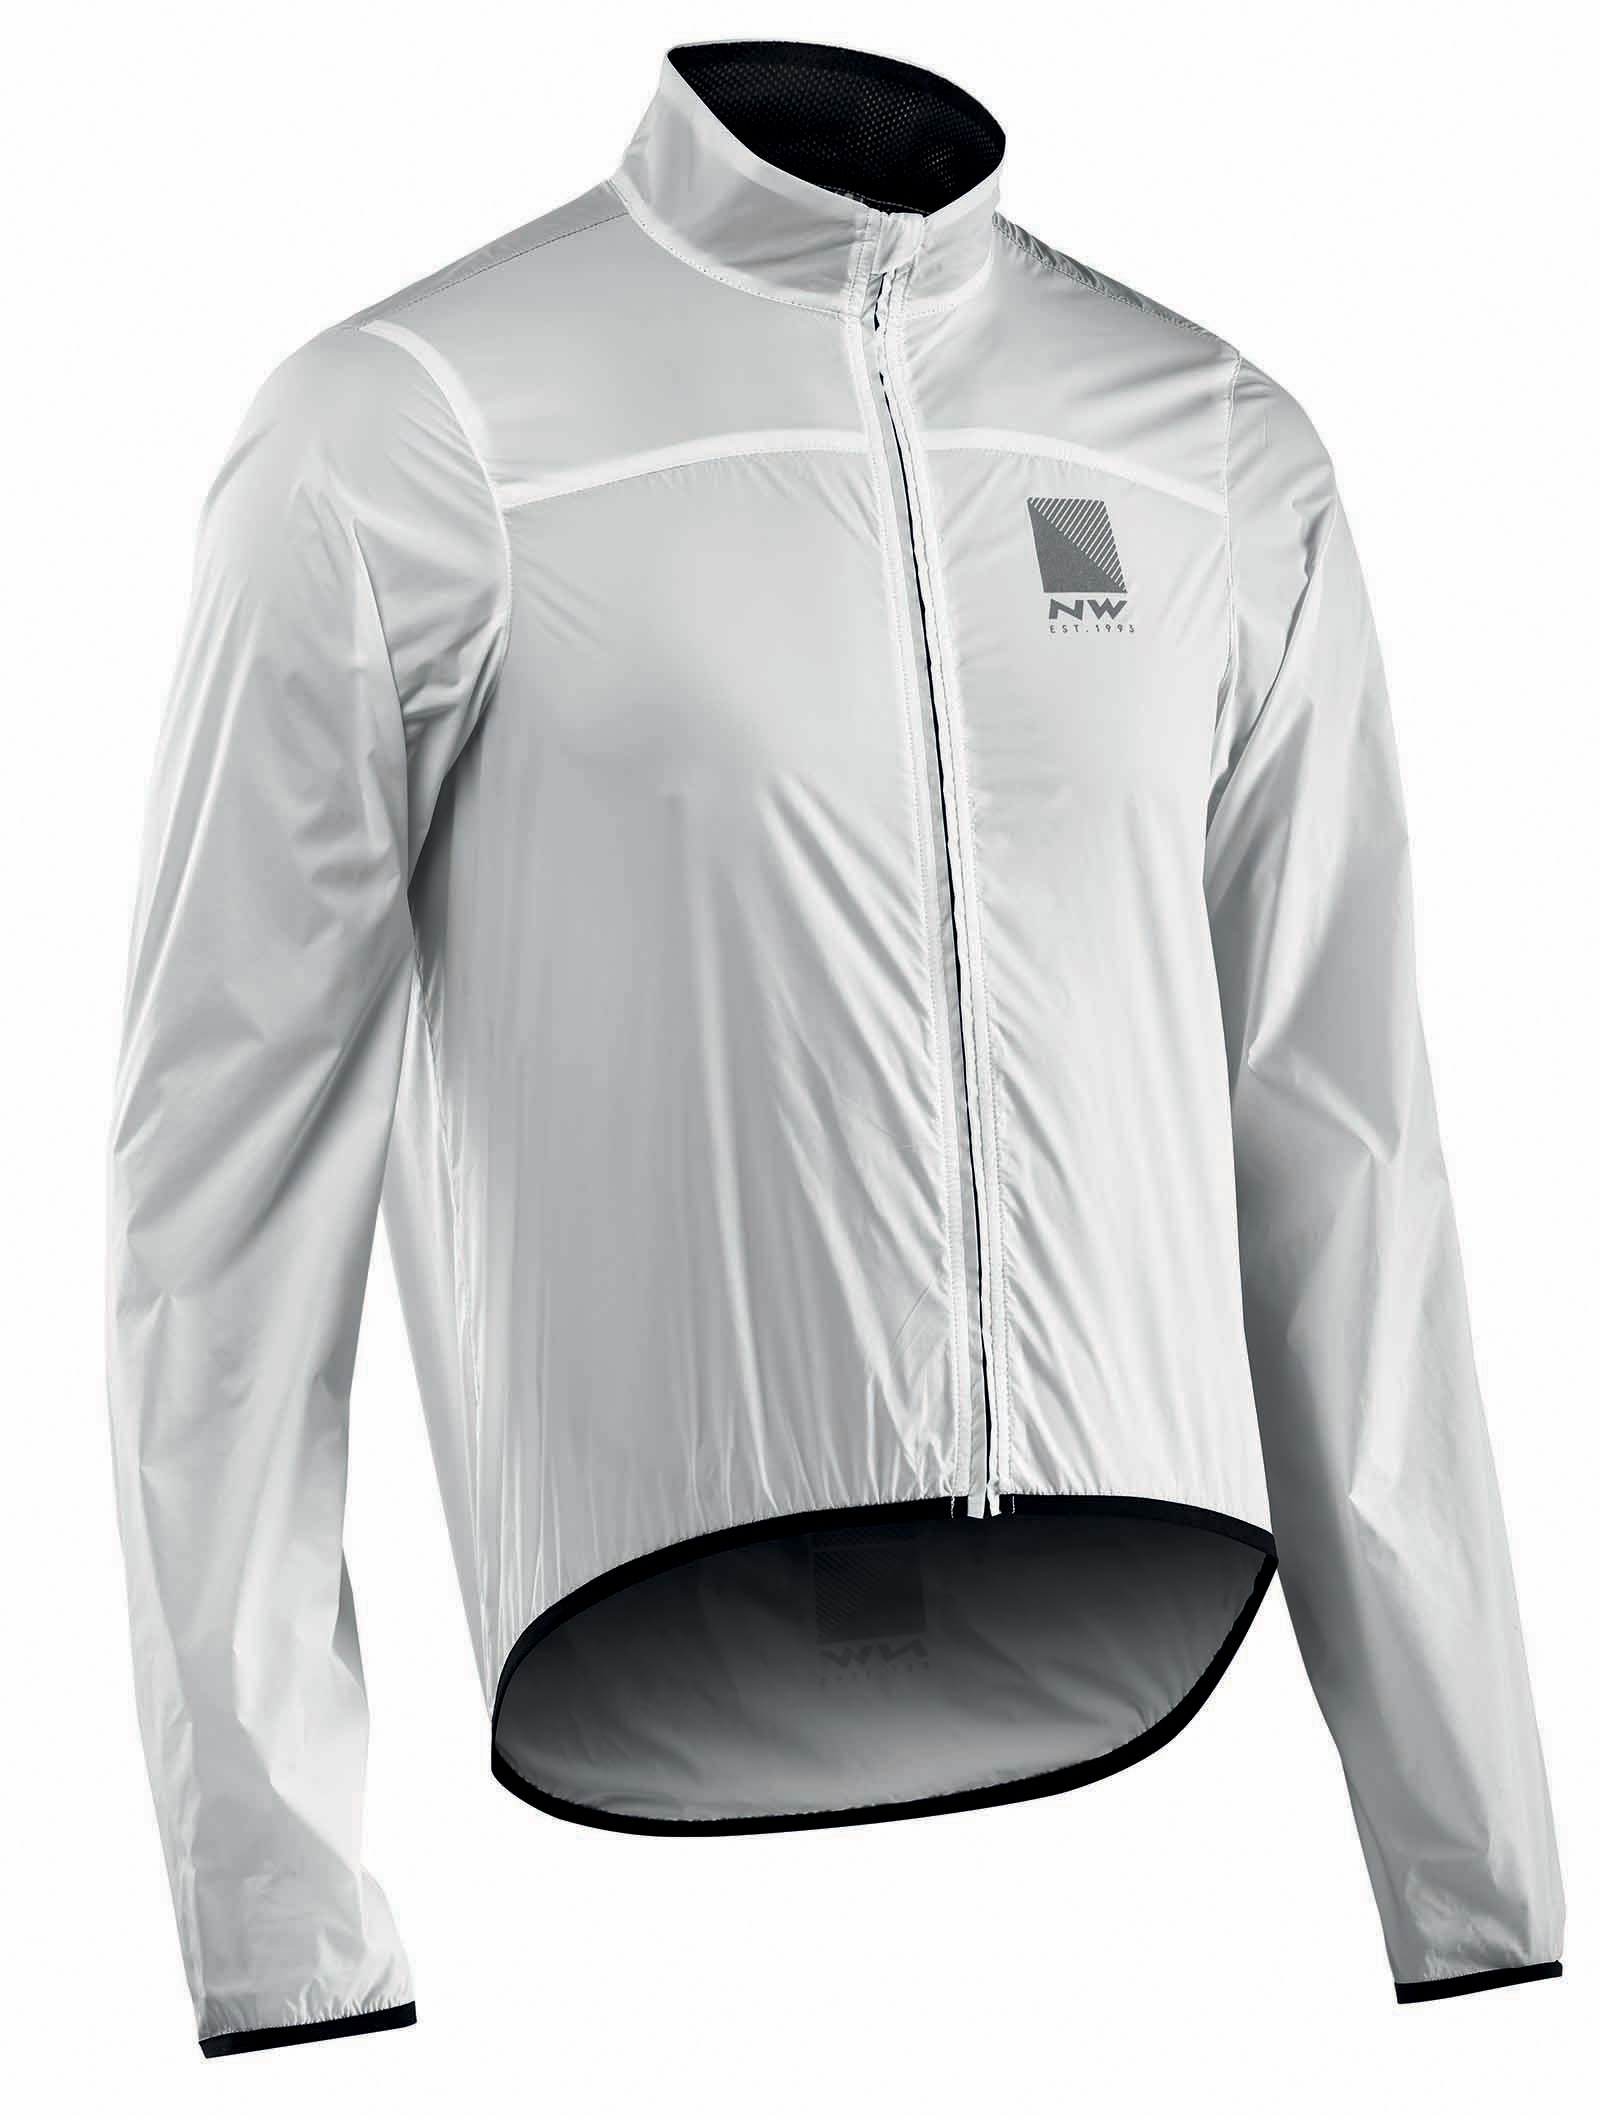 NORTHWAVE Man cycling jacket BREEZE 2 white